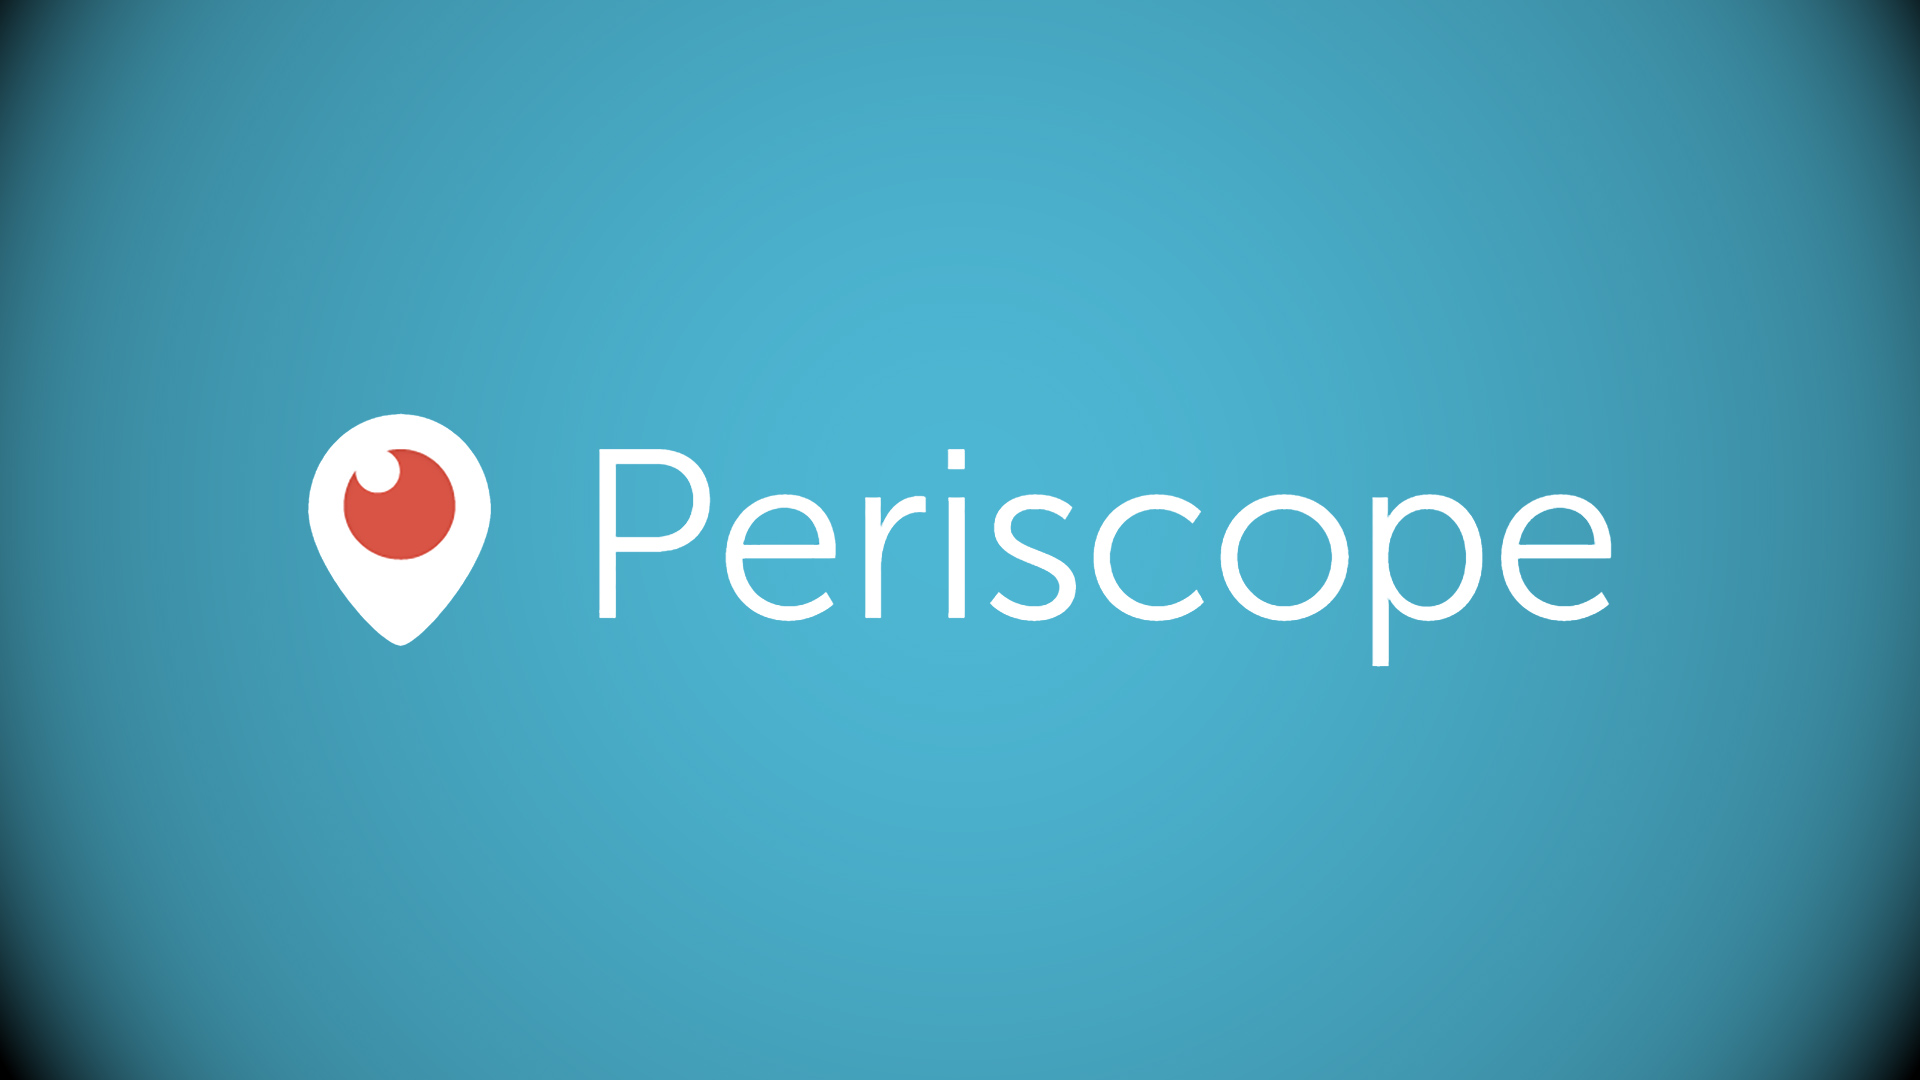 Logo of Twitter's Persicope